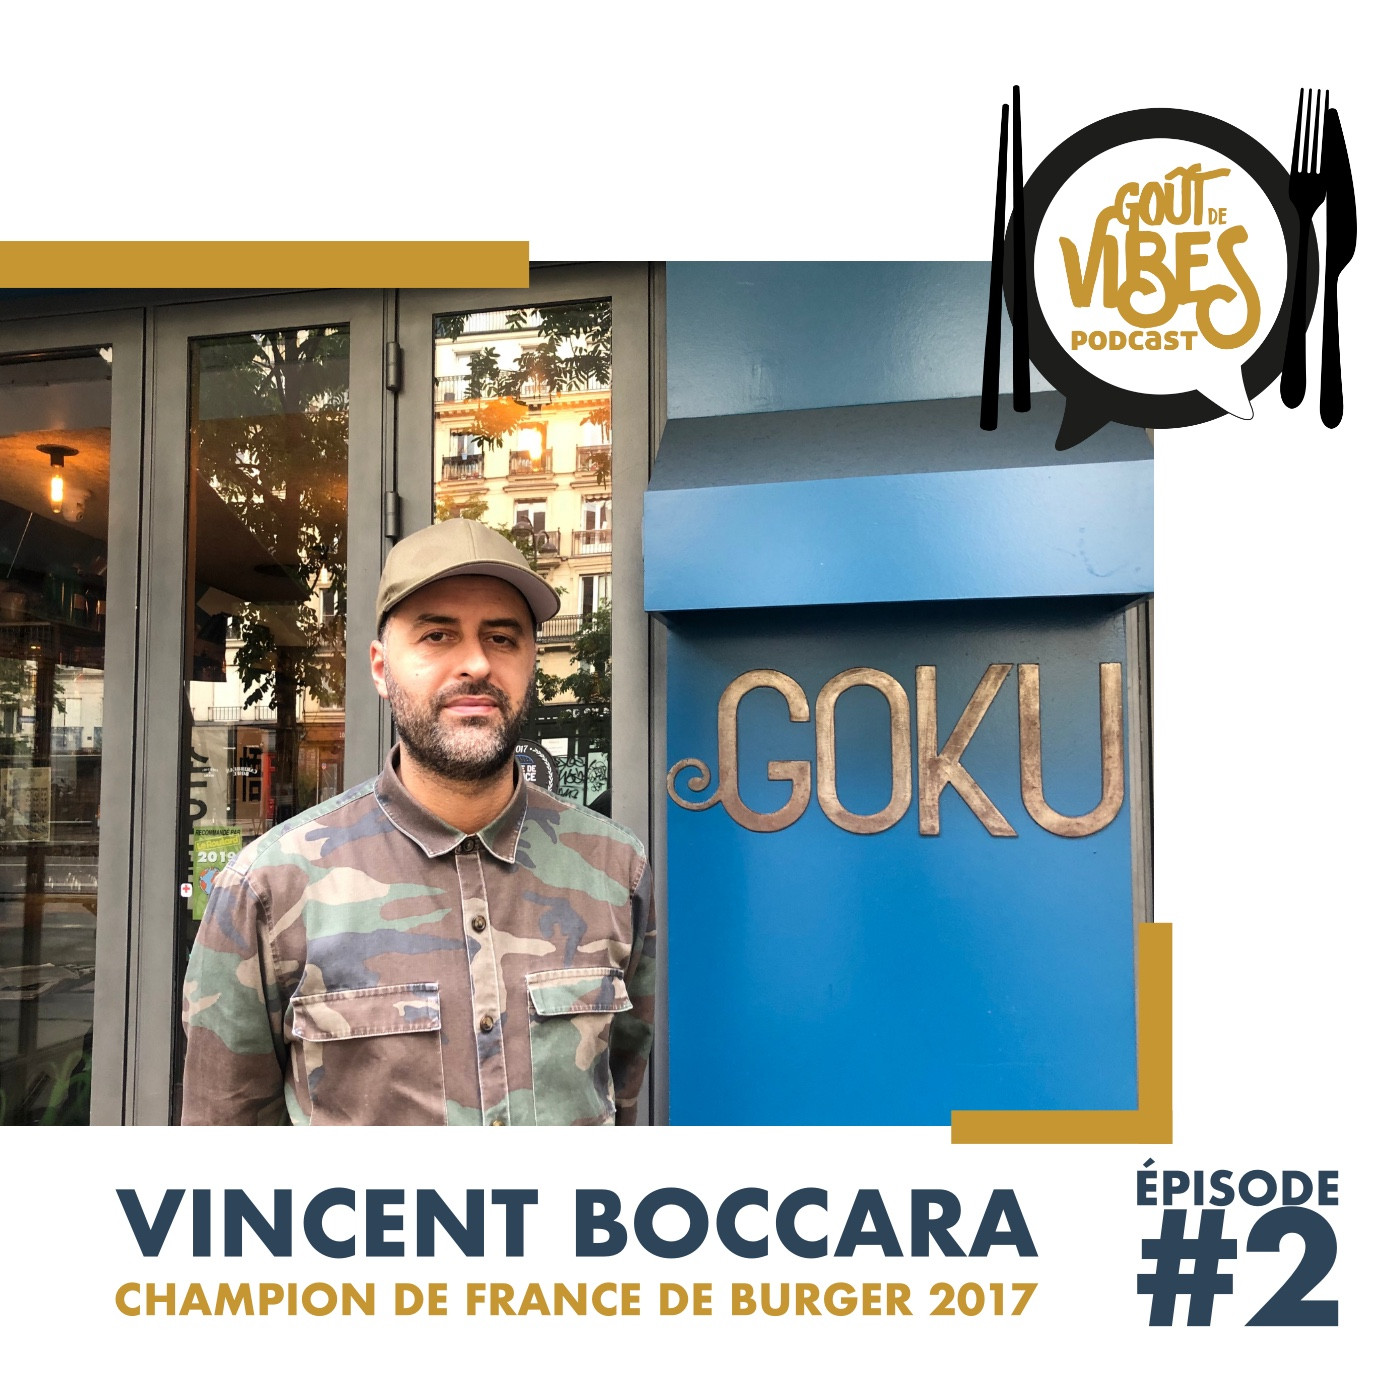 (#2) Vincent Boccara, champion de France de Burger 2017